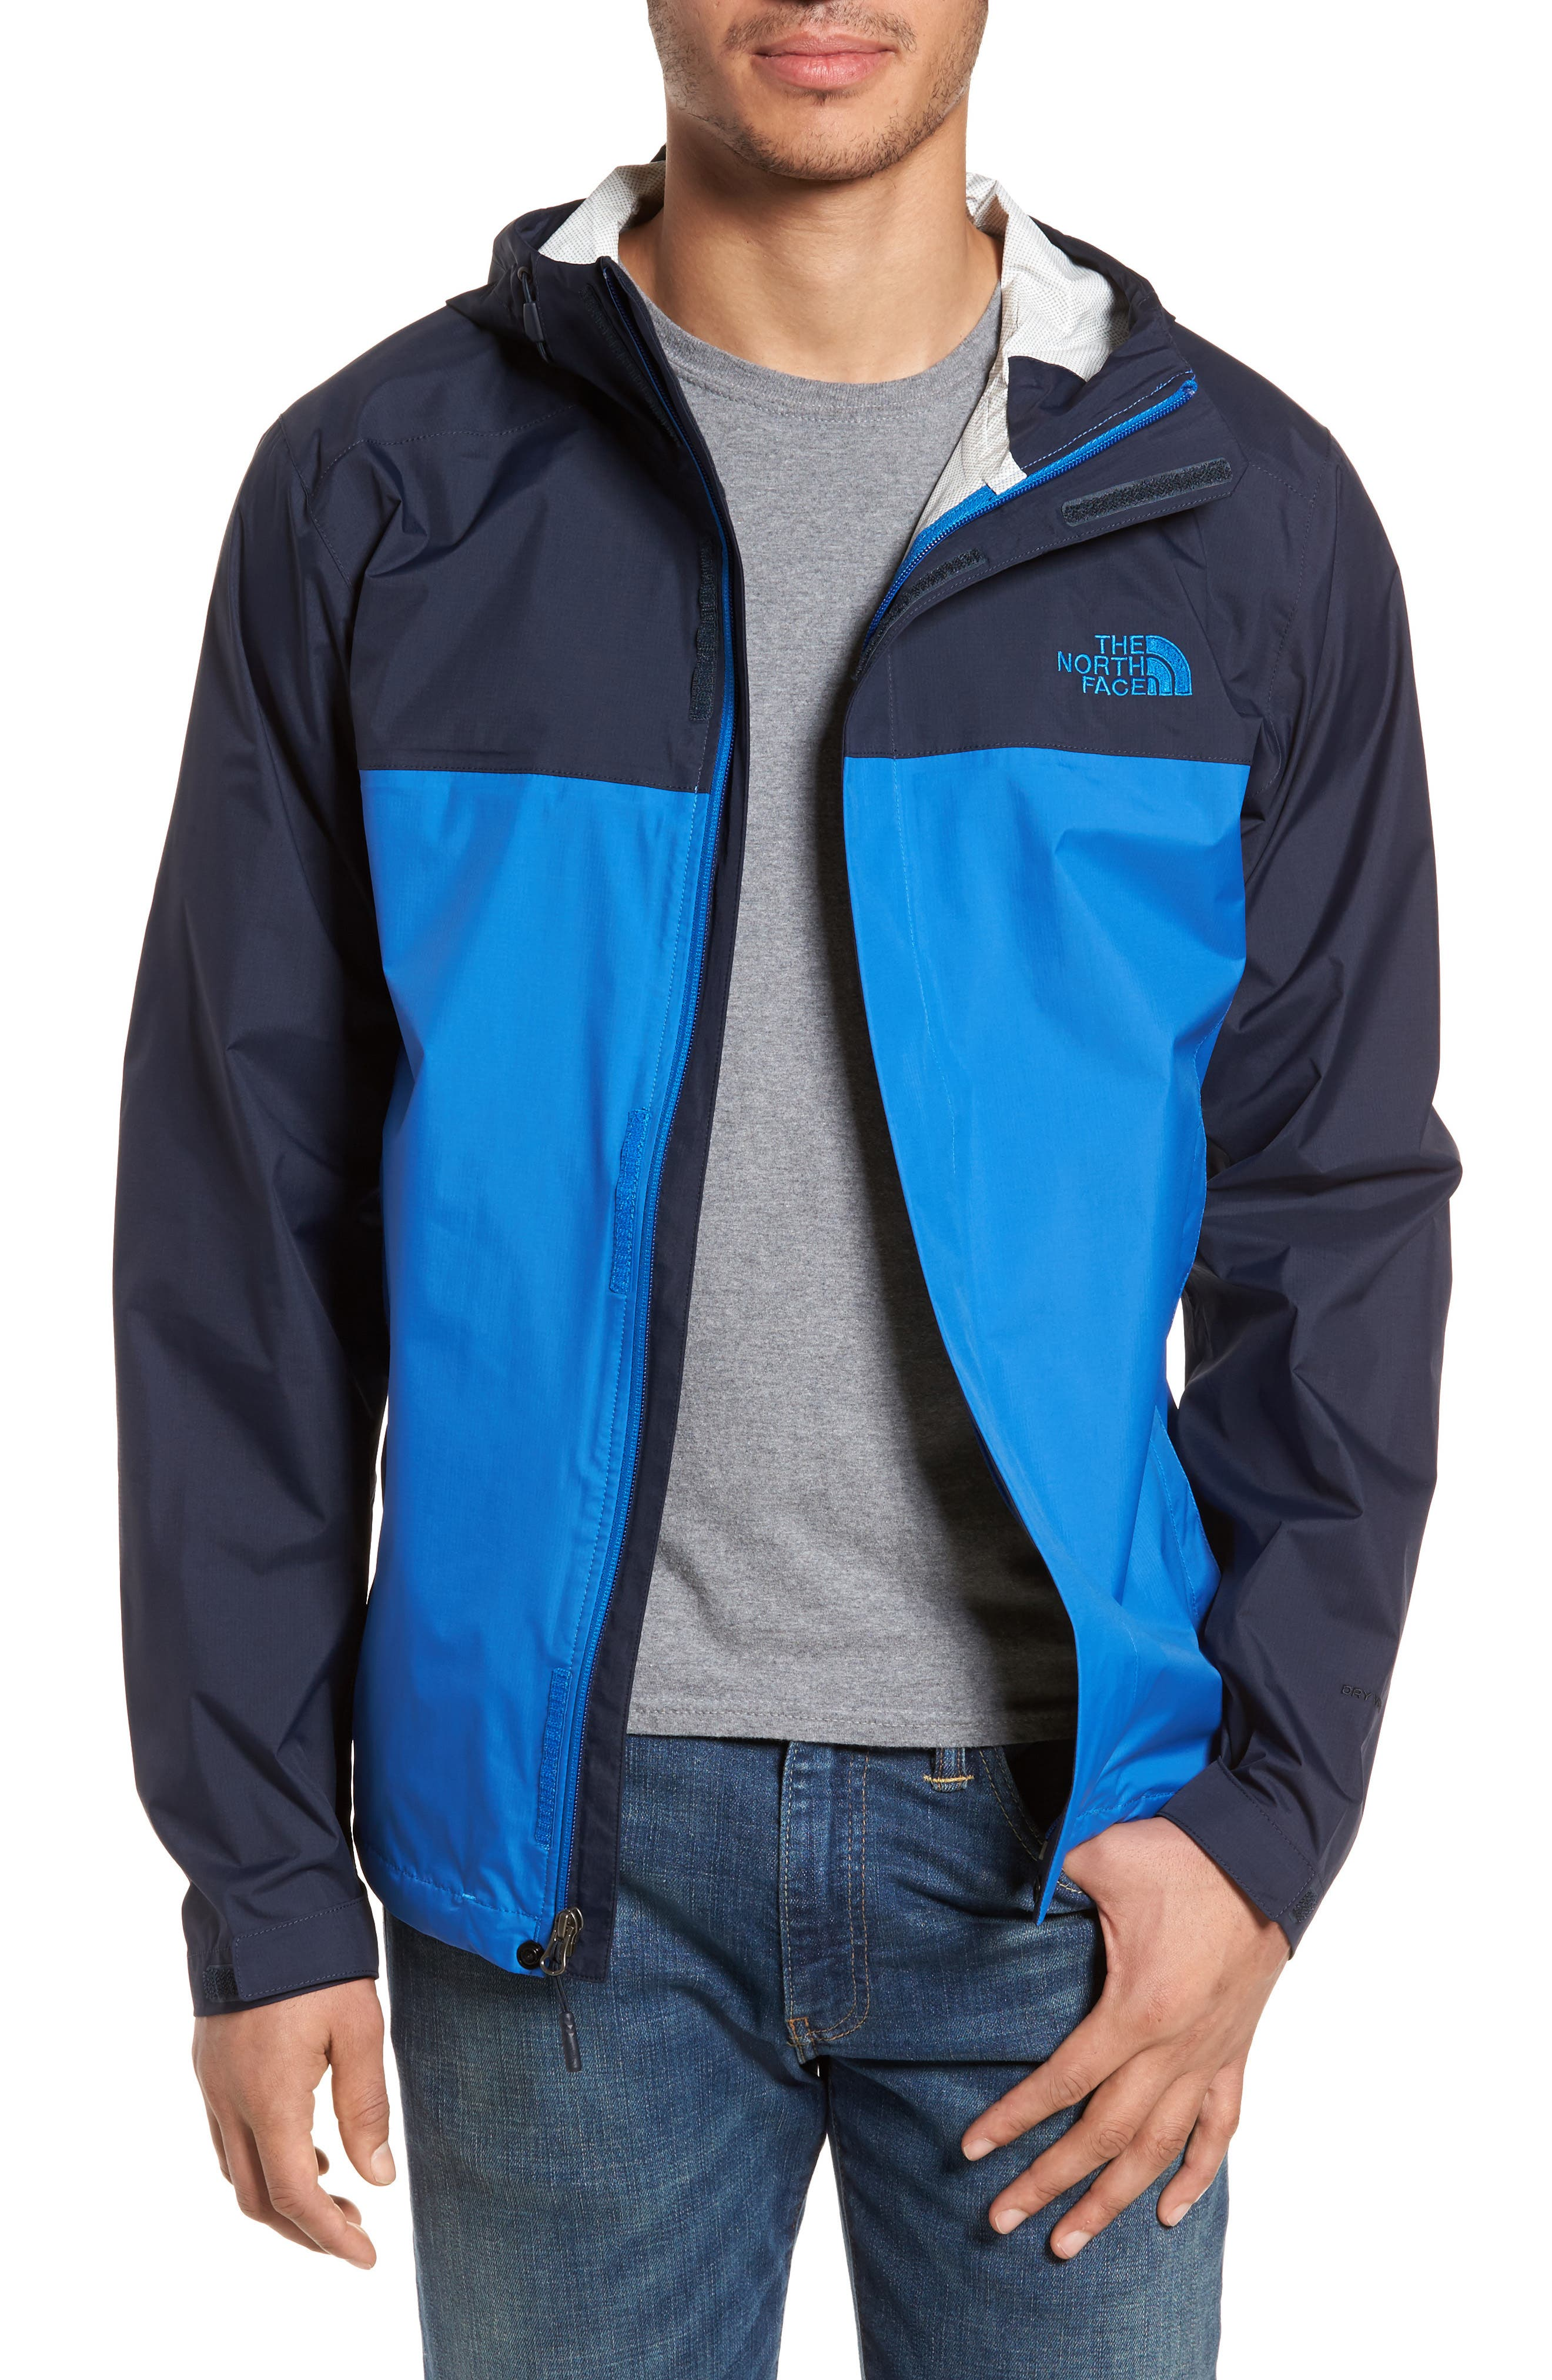 The North Face Venture II Raincoat